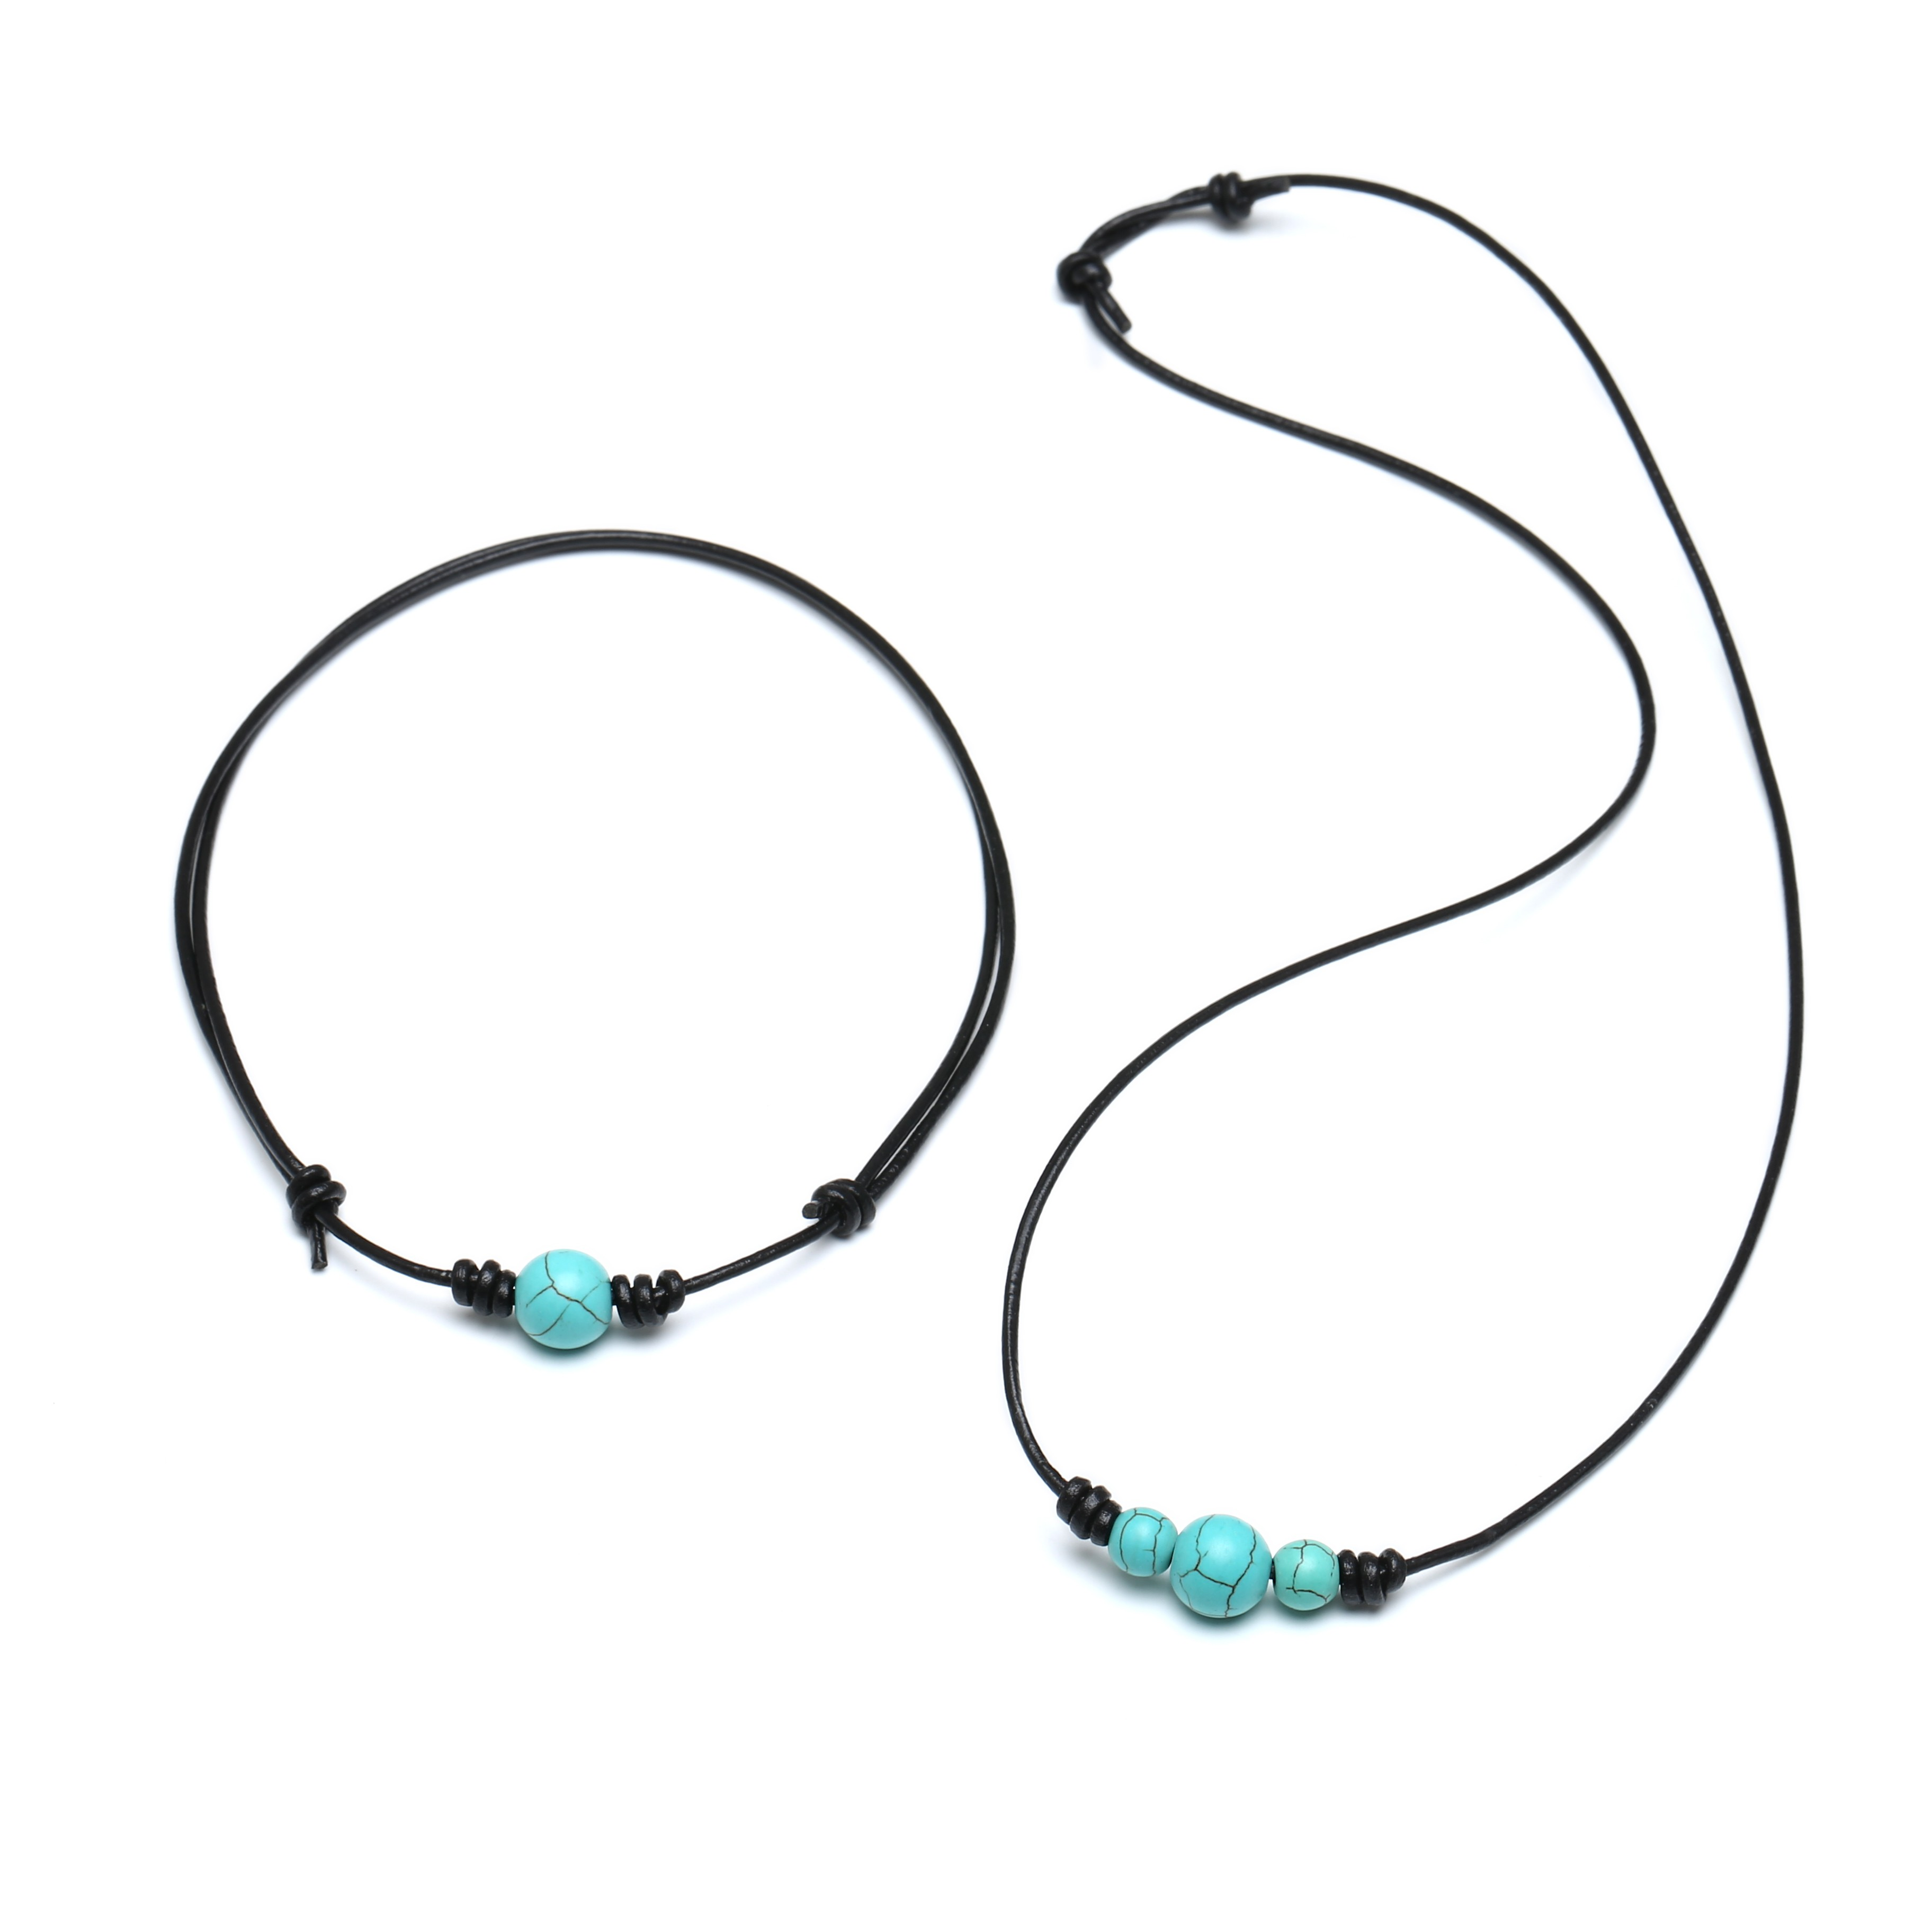 Aobei Pearl, Handmade Necklace made of Single Turquoise ...